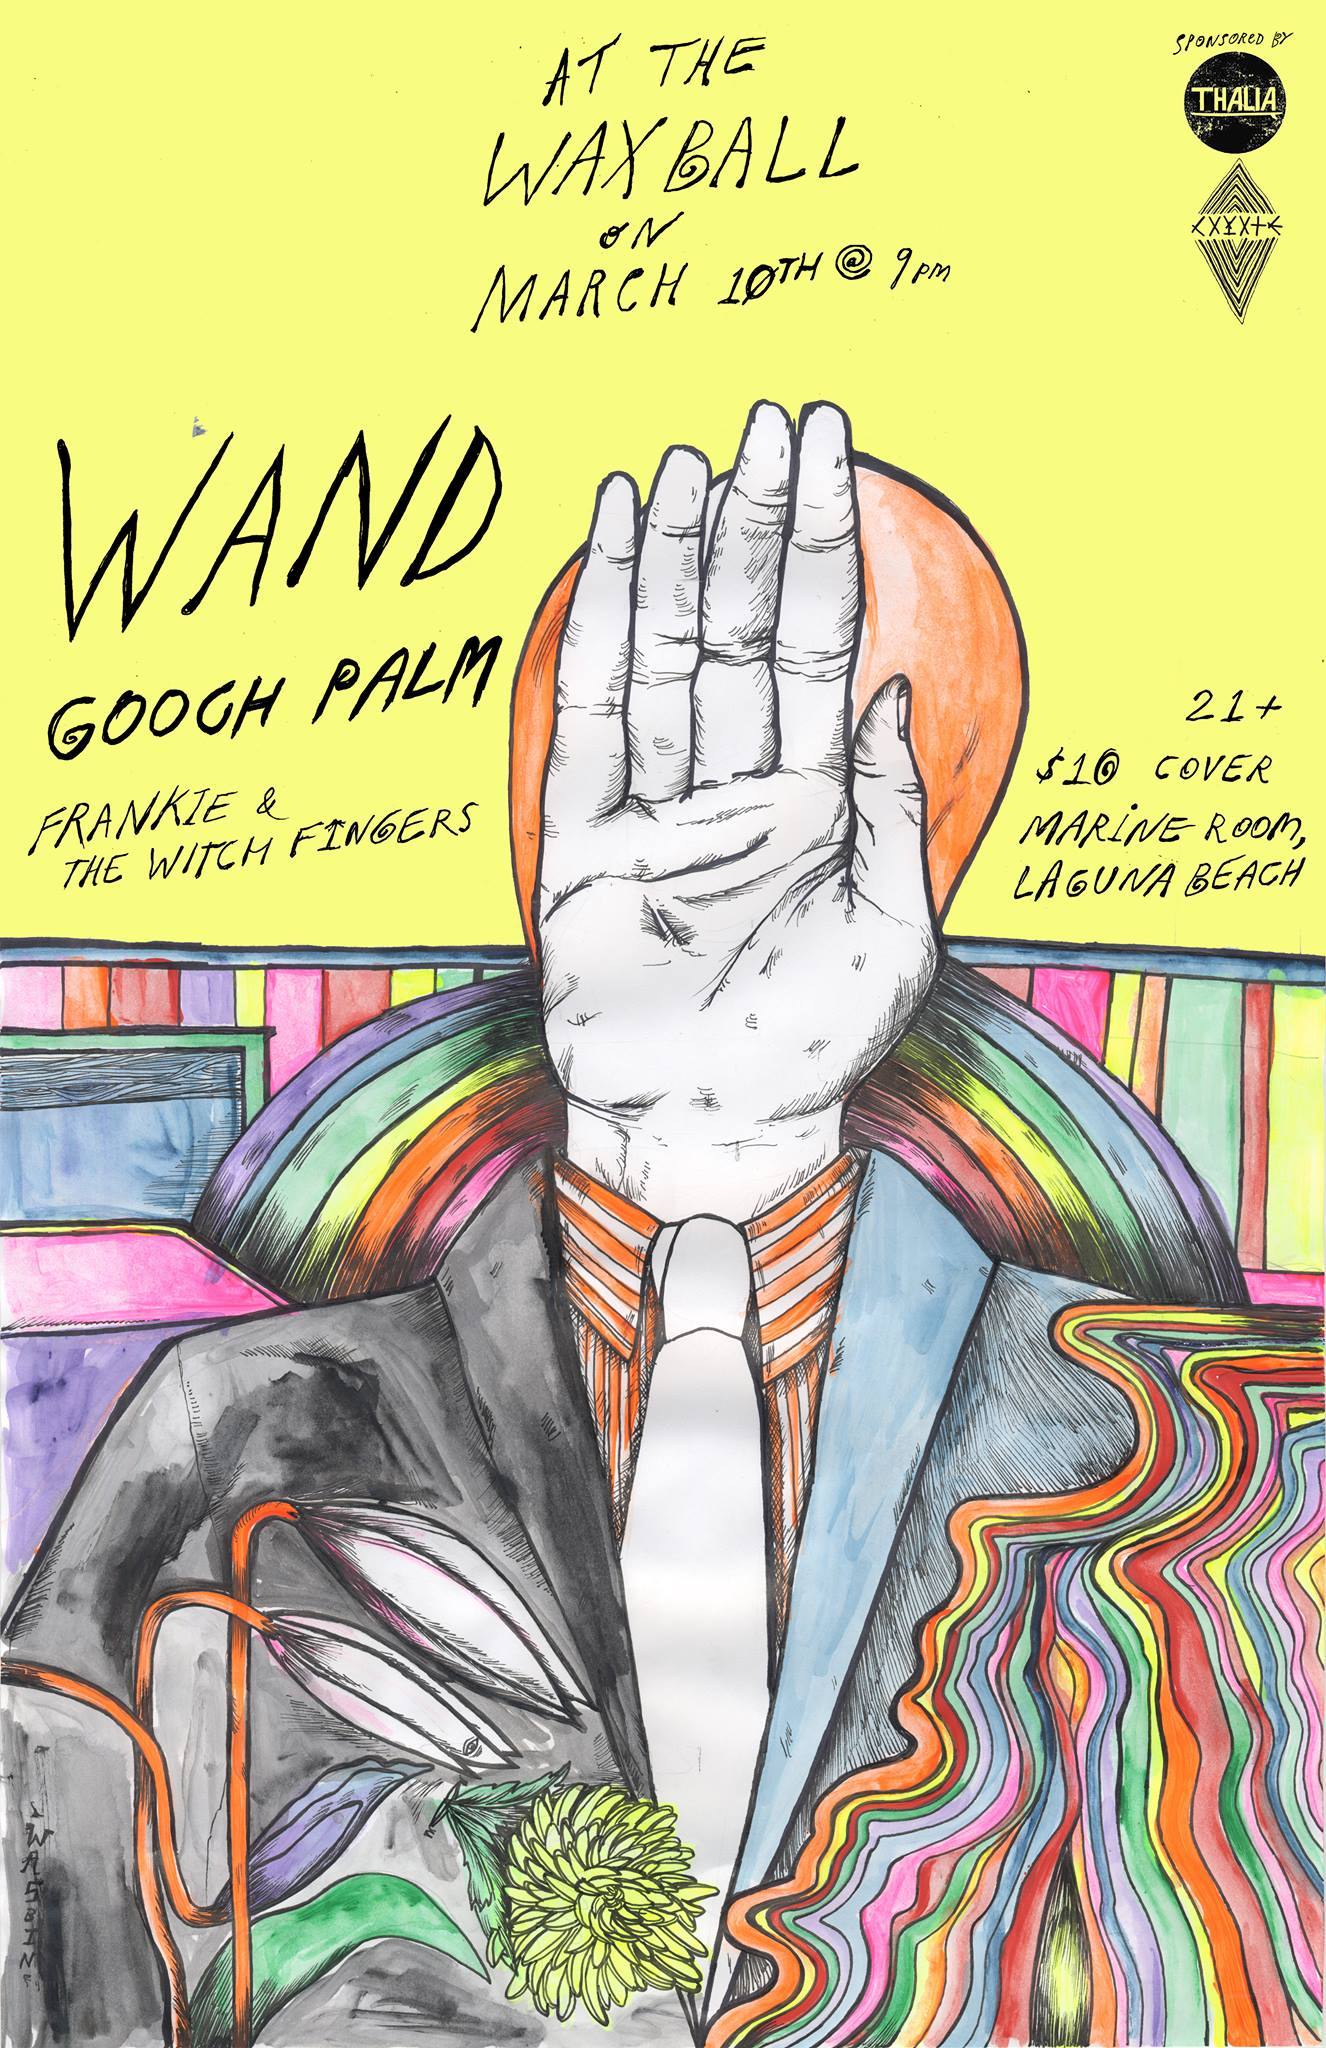 """Featuring live performances by:    WAND [LA]   GOOCH PALMS [AUS]   FRANKIE & THE WITCH FINGERS [INDIANA]    WAND - Hailing from Los Angeles, CA. WAND is getting ready for their album debut 'Golem' to hit shelves mid-March 2015. """"The Los Angeles-based quartet, which was signed by Ty Segall himself to his Drag City imprint, GOD? Records, and will appeal to fans of Tame Impala. Admiring the """"psychedelic stomp"""" of recent single """"Broken Candle"""", music blog Austin Town Hall goes on the describe the album like this: """"Ganglion Reef has a great deal of fuzzy elements to it but they walk this fine line between being noisy and radio-friendly."""""""" - HypeM    GOOCH PALMS - For al  most 4 years Australia's favorite punk sweethearts have been melting faces with their high energy, take no prisoners, balls out, drool-inducing live shows. They make a lot of noise for a minimal two piece but what they lack in instrumentation they make up for in stage presence and songs that you'll be humming, whether you want to or not, for days, months or maybe even years after the show is over. They've shared the stage with the likes of Jon Spencer Blues Explosion, Thee Oh Sees, 5,6,7,8's, Nobunny, Hunx & His Punx, Shannon & The Clams, The King Khan & BBQ Show, Tyvek and more.  FRANKIE & THE WITCH FINGERS - Straight outta Bloomington, Indiana [and now Los Angeles], Frankie & The Witch Fingers give a nod to bands like The Sonics, The Seeds, The Nerves and 13th Floor Elevators. Dylan channels the inner thoughts and dreams of his psychedelic feline companion, Frankie. They share a singluar MIND and channel aural colors and shapes thru the ELECTRIC SÉANCE. The """"fingers"""" are what you would expect them to be - pieces of the GREATER BEING, bent with occult knowledge. Together they melt music onto small reels of tape while exploring the INFINITE realm of sound. This phenomenon was referred to by the ancient ones as... Frankie and the Witch Fingers.  Doors @ 9pm. 21+ $10 Cover  Don't miss out on 3 epic bands! """